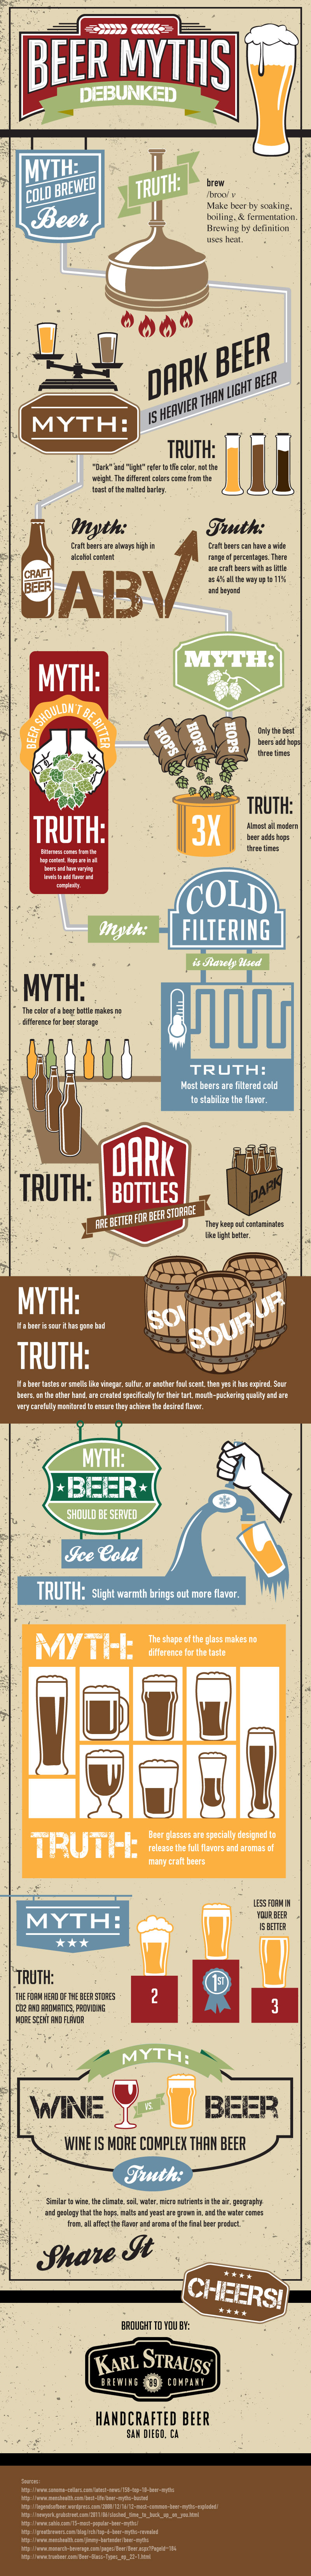 beer-myths-debunked_51a4f9a14e30a-1